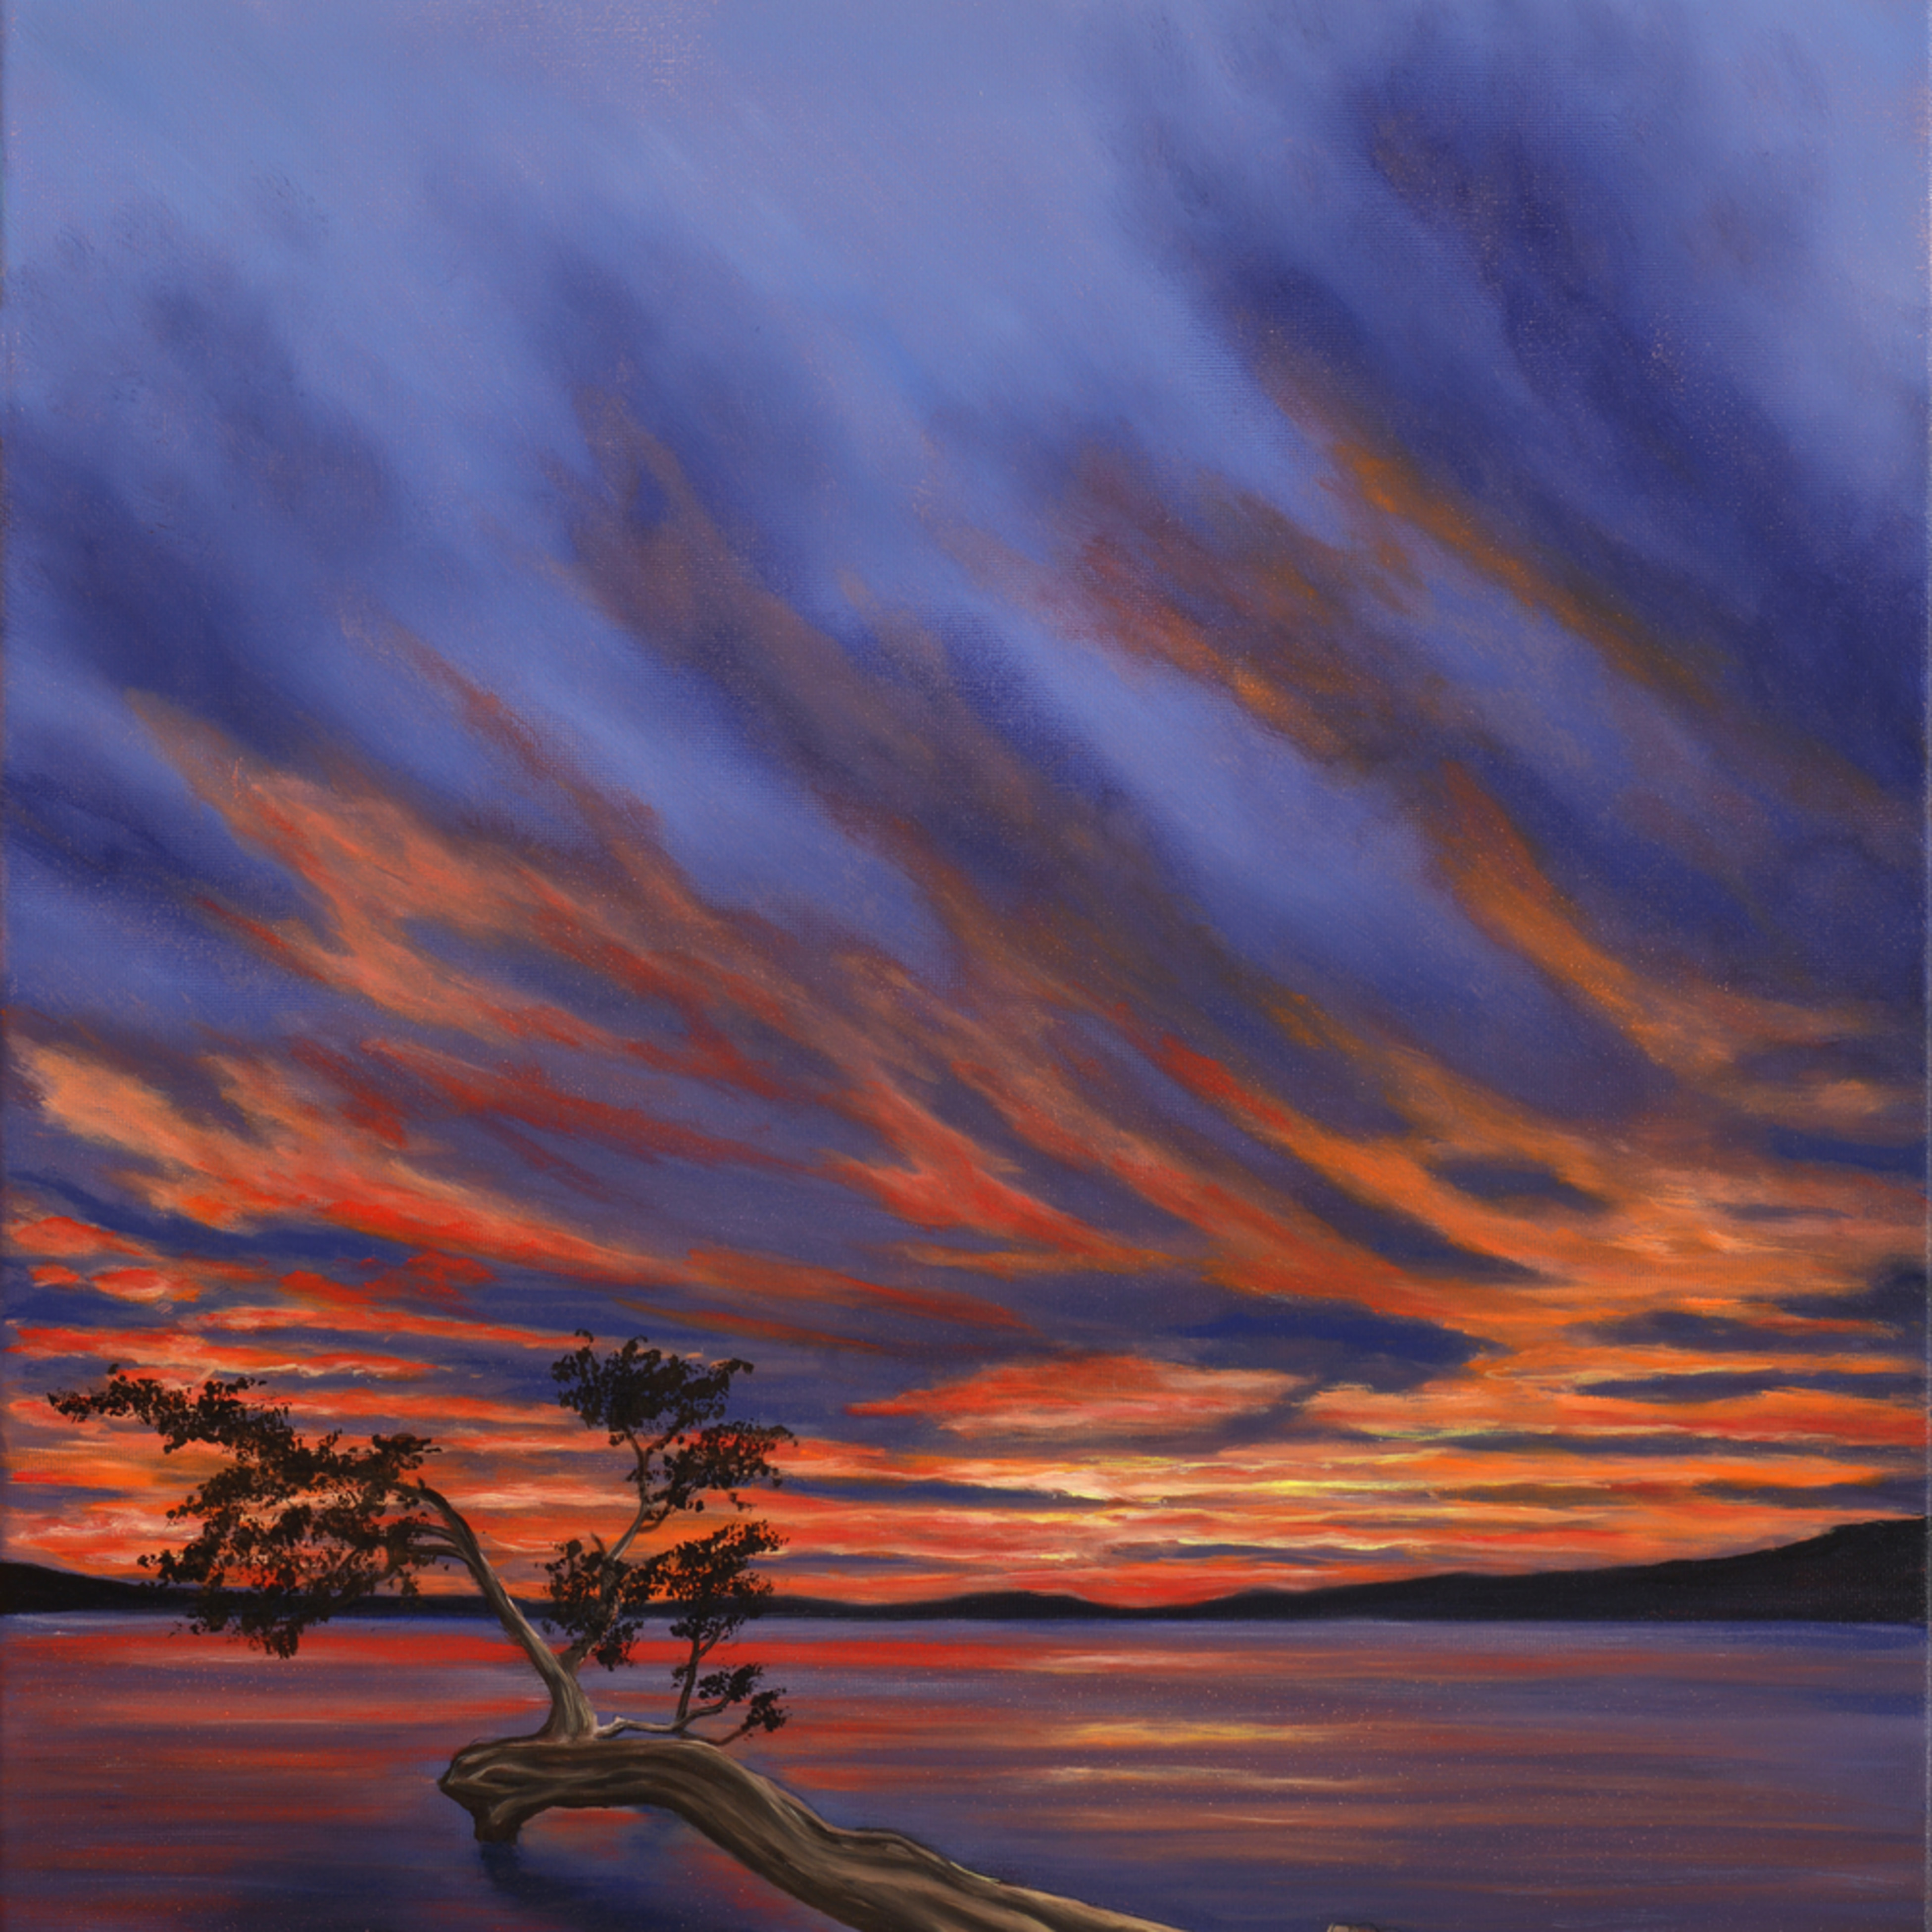 16  lake sunset oil on canvas by monica marquez gatica mmg art studio fjnqjd